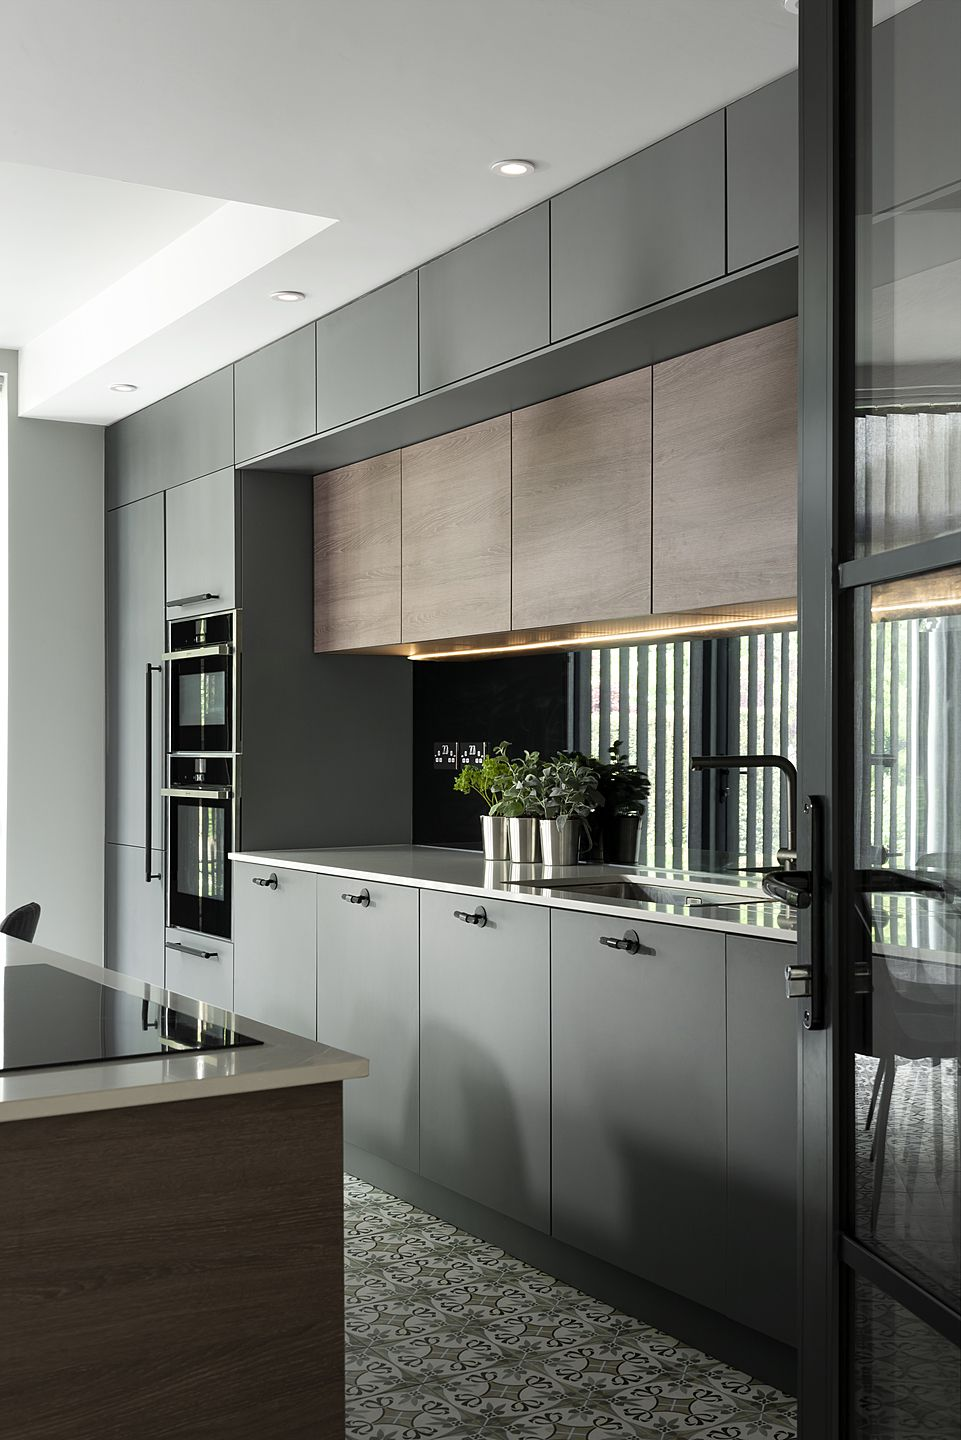 Stunning contemporary kitchen with dark units and feature